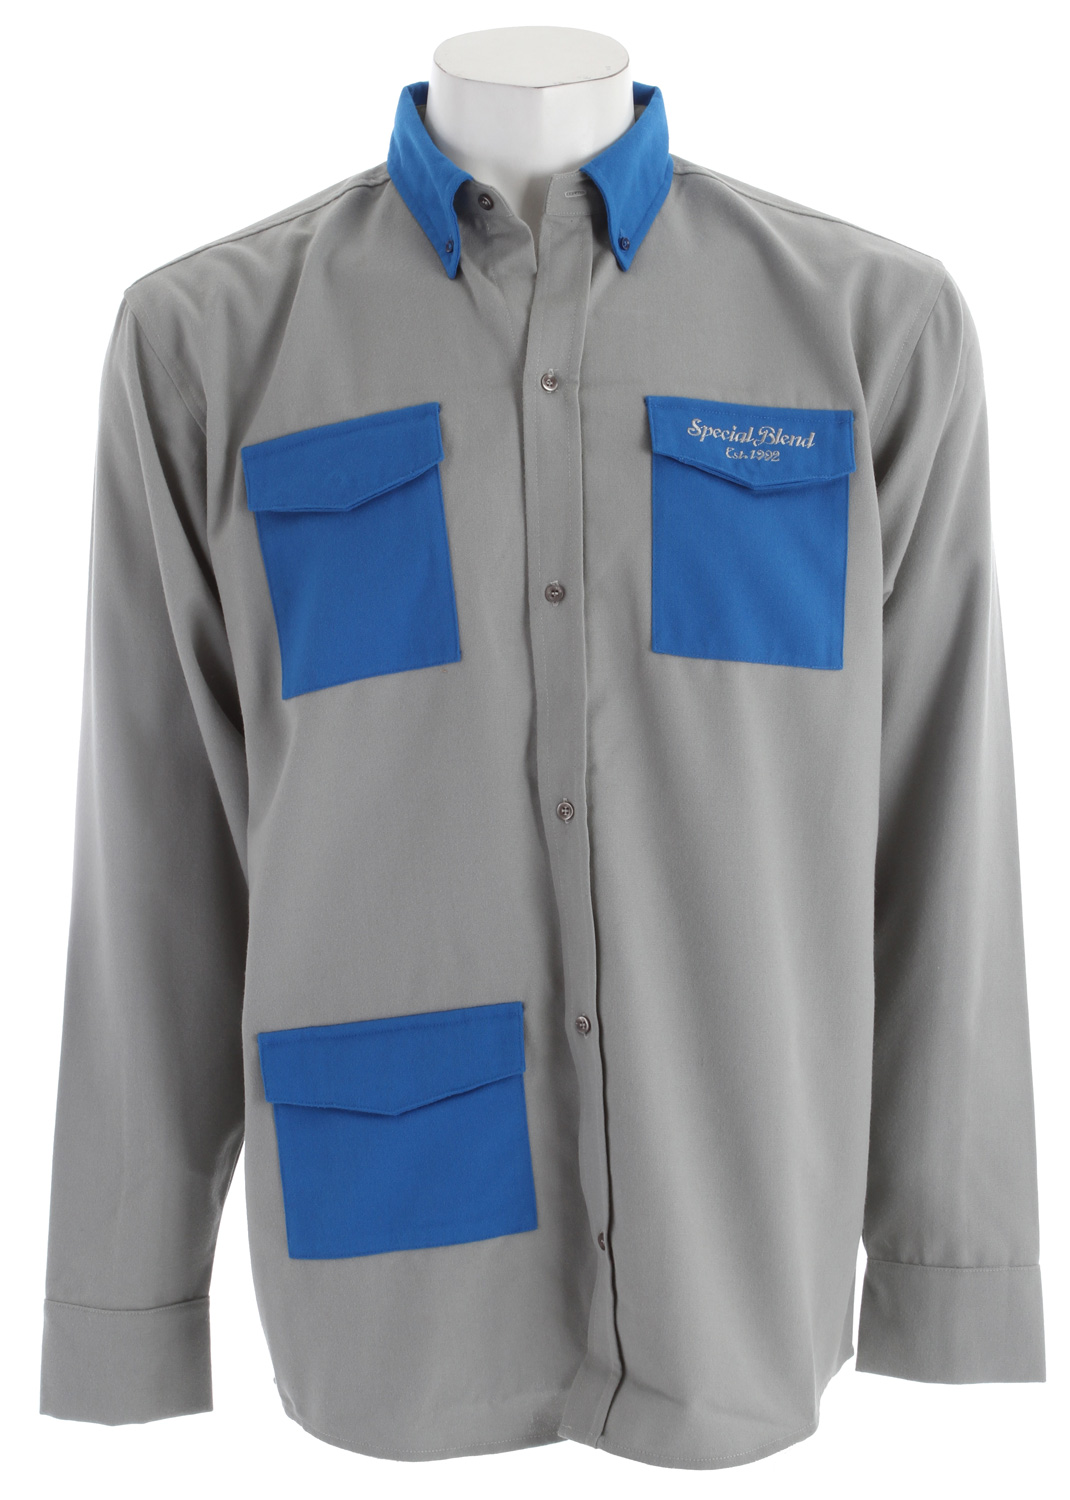 Cold weather means that you need extra protection in order to stay safe and comfortable outdoors, and this Special Blend Blue Collar Baselayer Top is the best first layer of winter clothing. You will love the unique look that is modeled after blue collar workman's clothes. This top is made of polyester poplin and has moisture wicking and quick drying properties that will keep you comfortable even if you start to sweat.Key Features of the Special Blend Blue Collar Baselayer Top: Polyester Poplin - Wicking and Quick Drying - $19.08